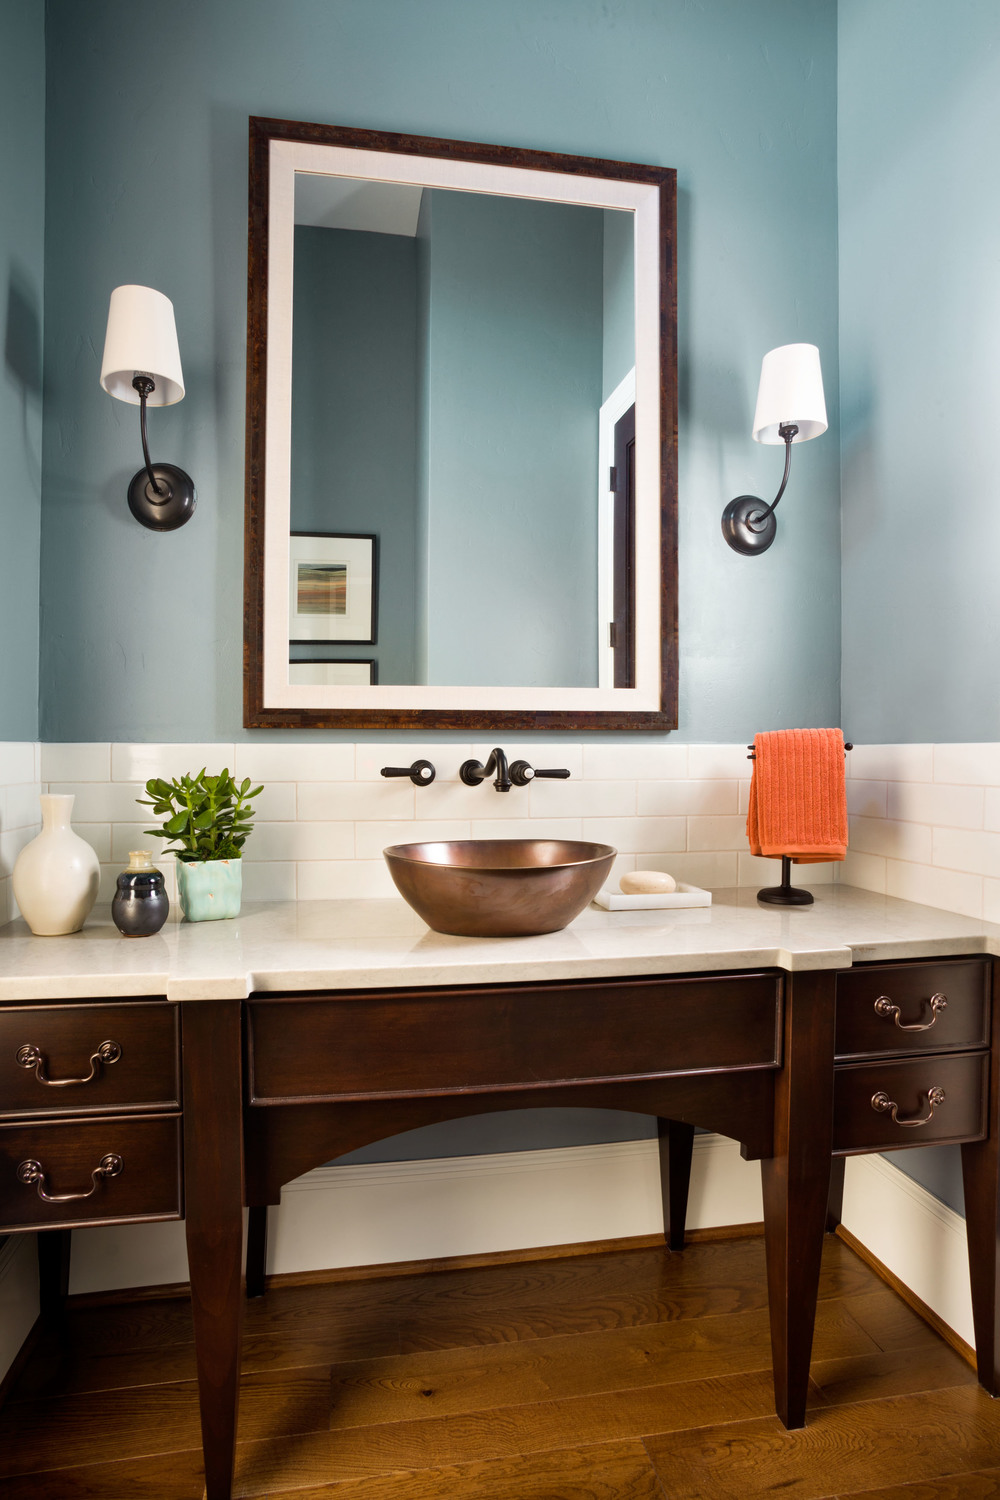 paint-smaller-rooms-brighter-colors-to-implement-bold-colors-in-your-home